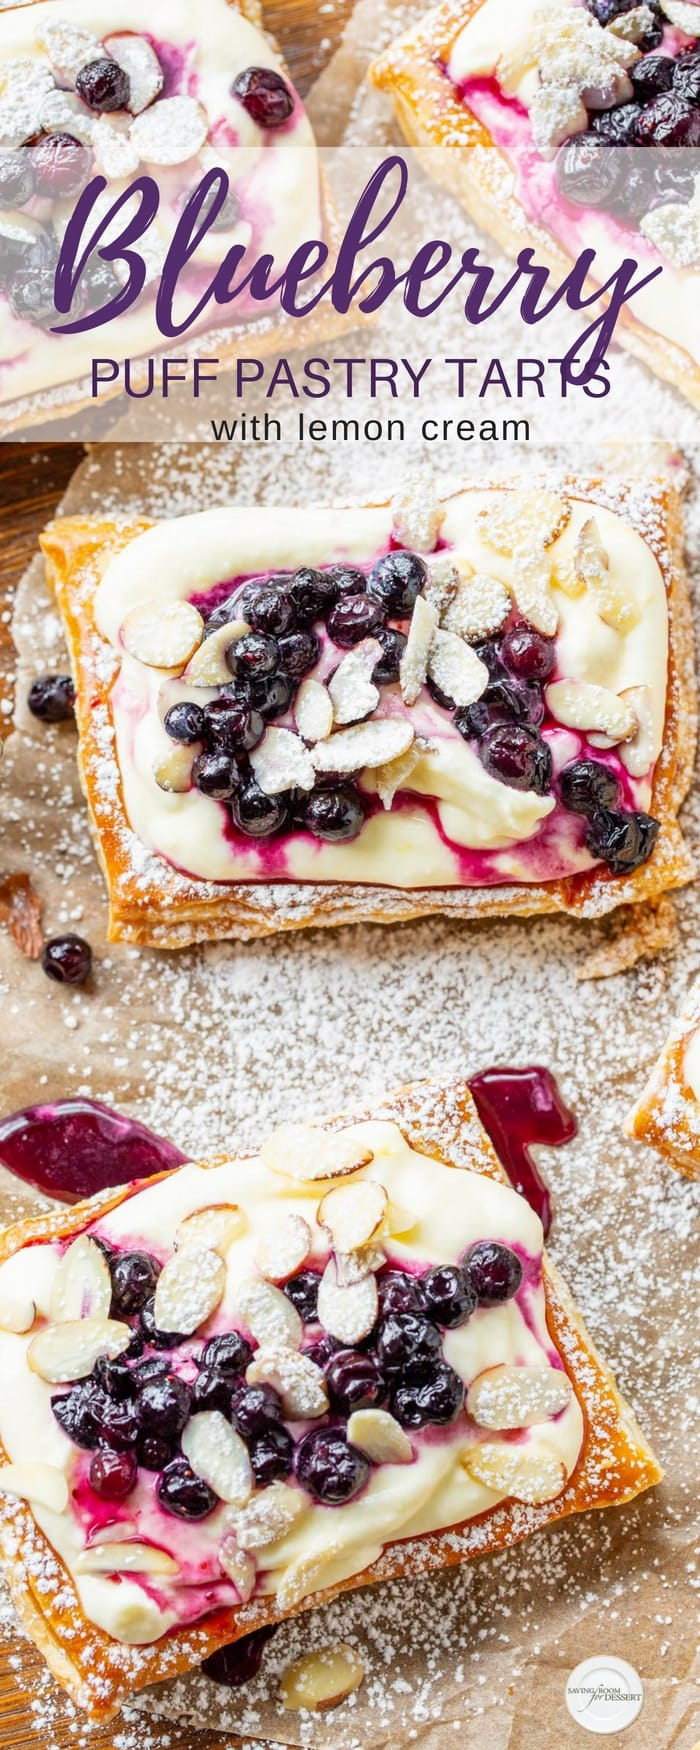 Blueberry Puff Pastry Tarts with Lemon Cream - a light and flavorful company worthy dessert that's easily made ahead and assembled just before serving. #savingroomfordessert #puffpastrytart #puffpastry #blueberrytart #lemoncurdtart #tart #pastrytart #lemonblueberrytart #easydessert